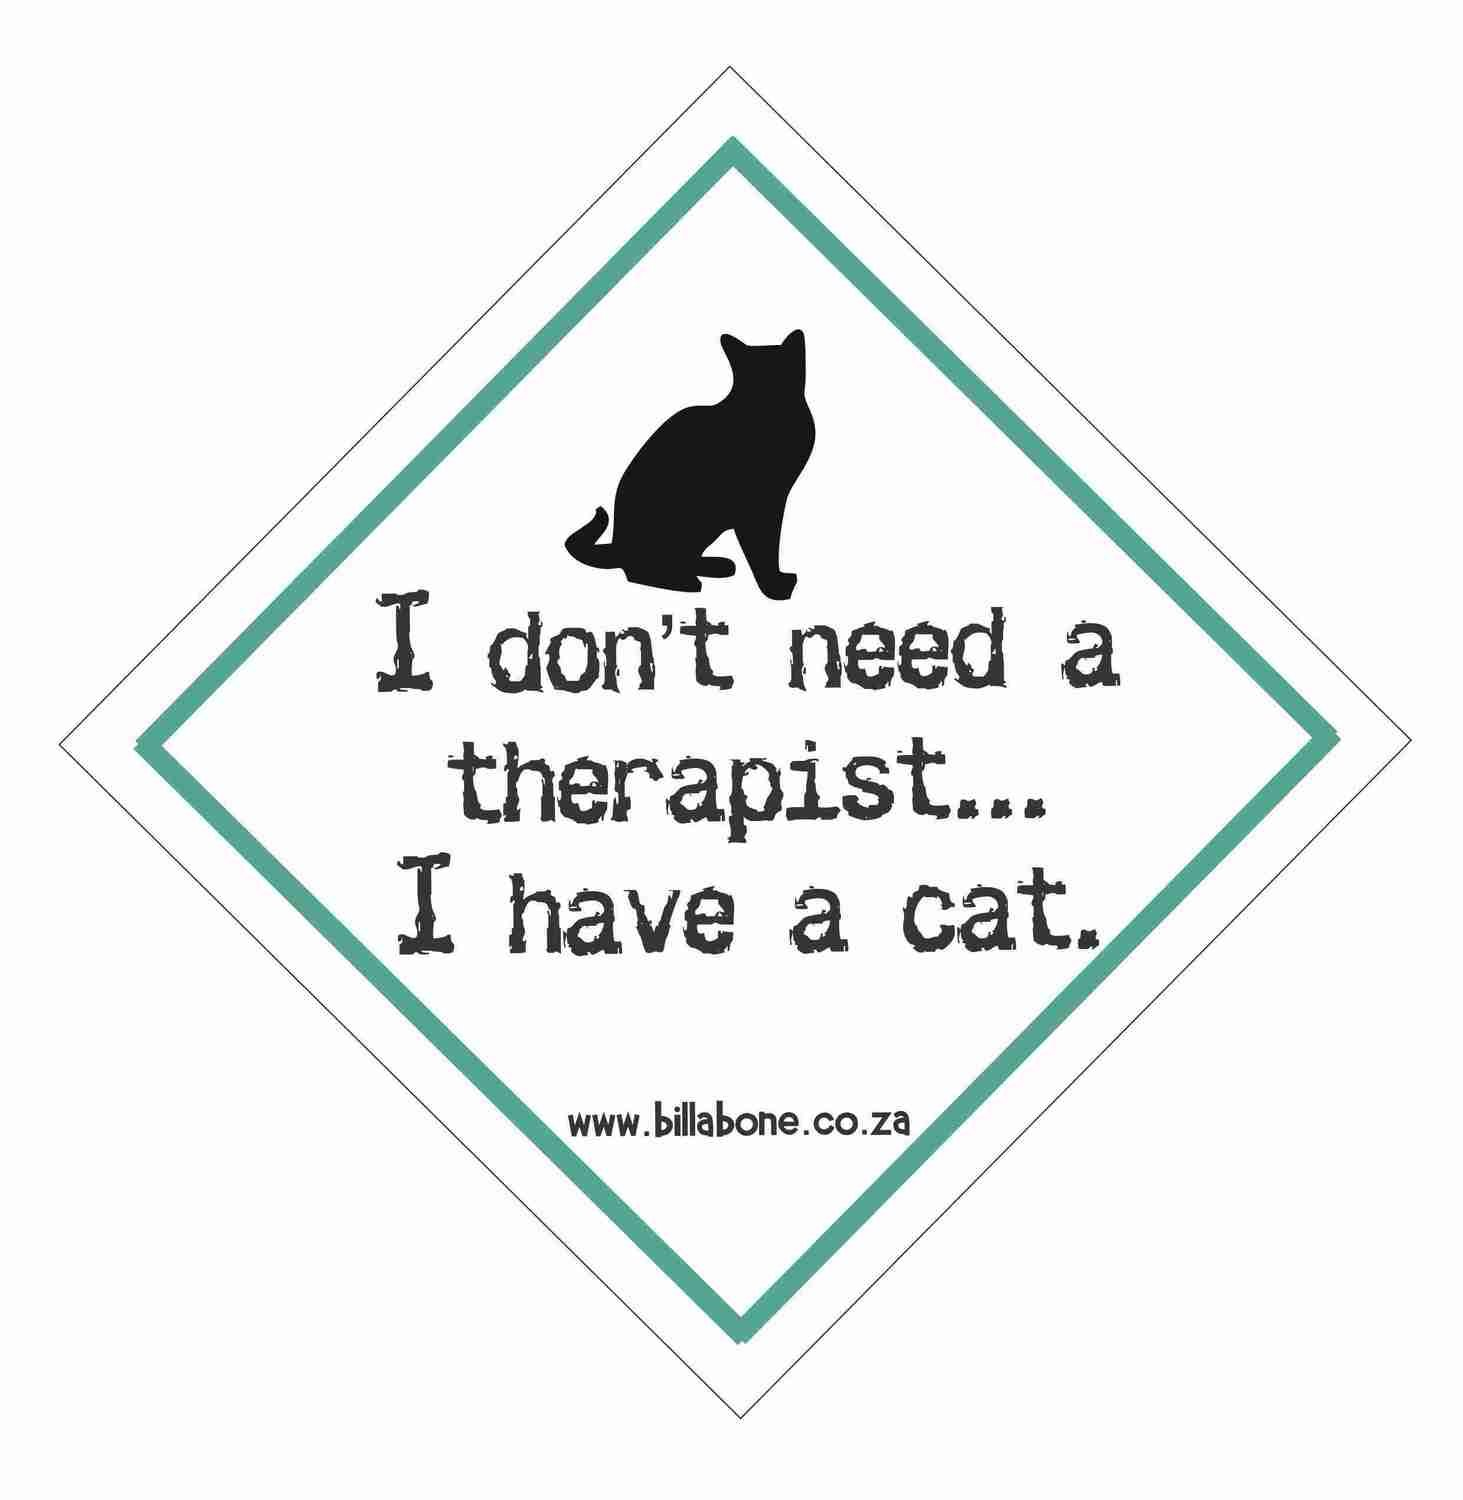 Billabone - I don't need a therapist... I have a cat On Board Sign or Decal